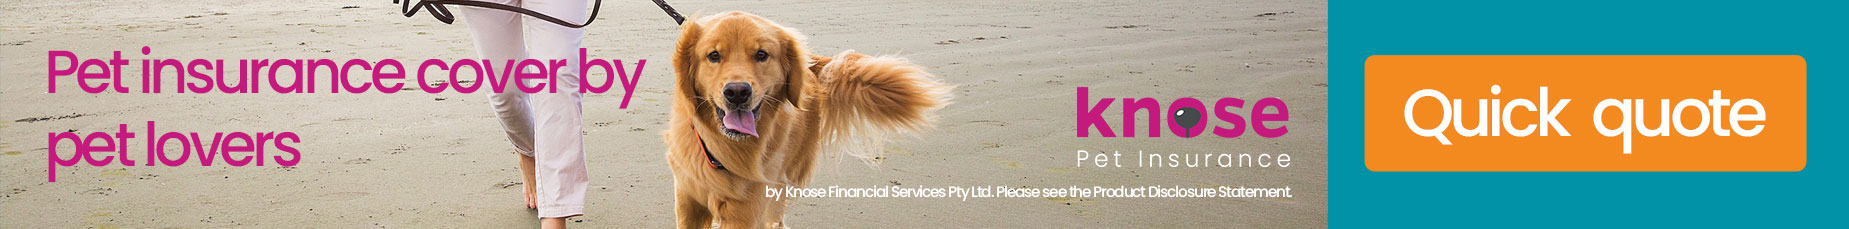 Pet insurance cover by pet lovers! Get a quick quote today!